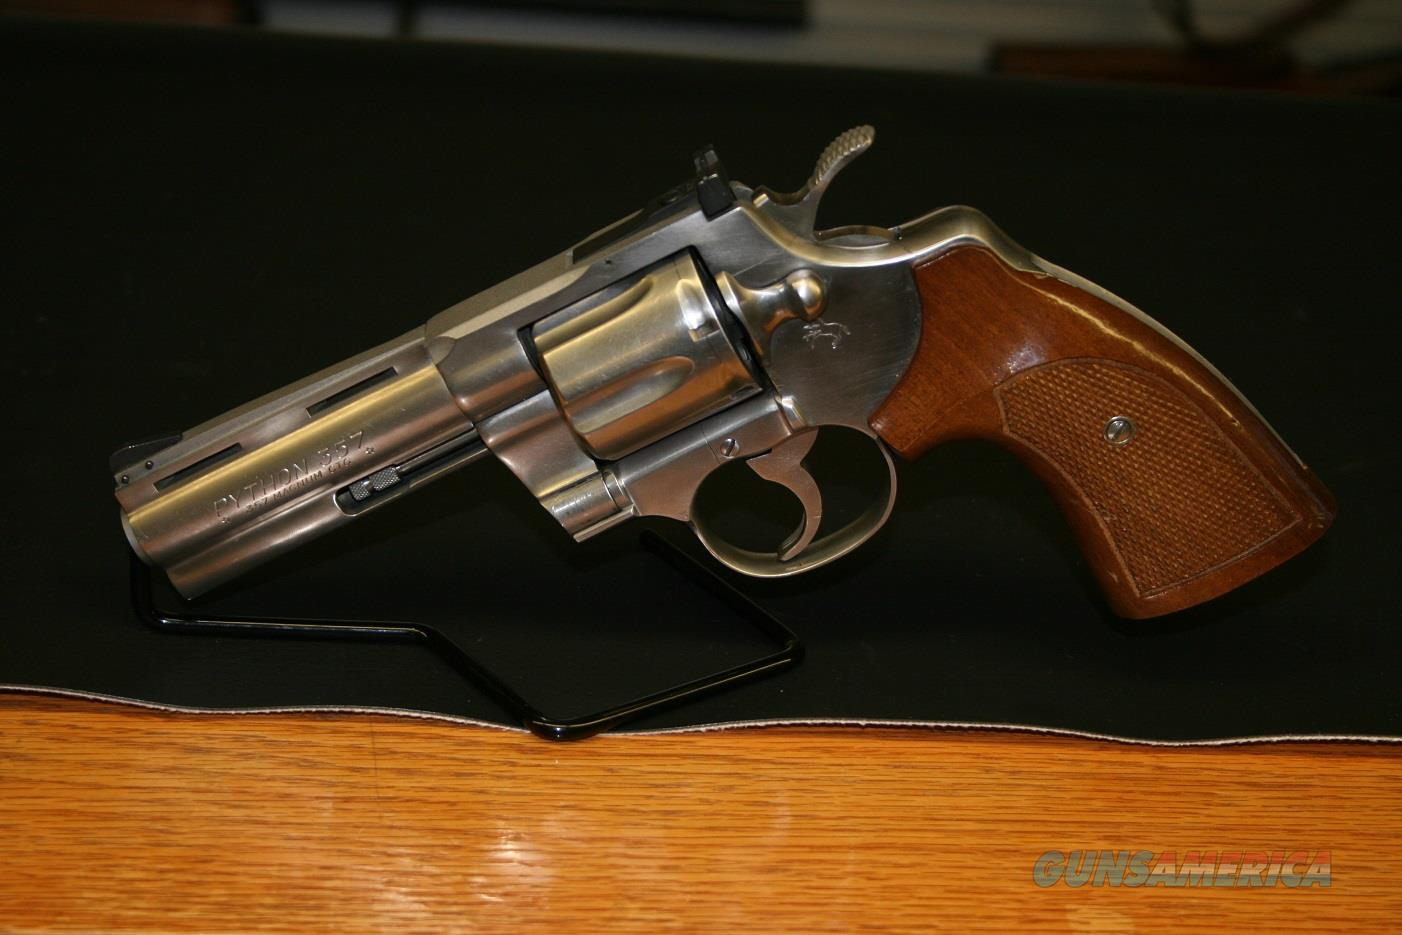 Colt Python 357 Magnum, 4in Vent Rib Barrel, 6 shot, Ramped Front Sight, Adjustable Rear Sight, Stainless Steel Finish, Walnut Grips  Guns > Pistols > Colt Double Action Revolvers- Modern